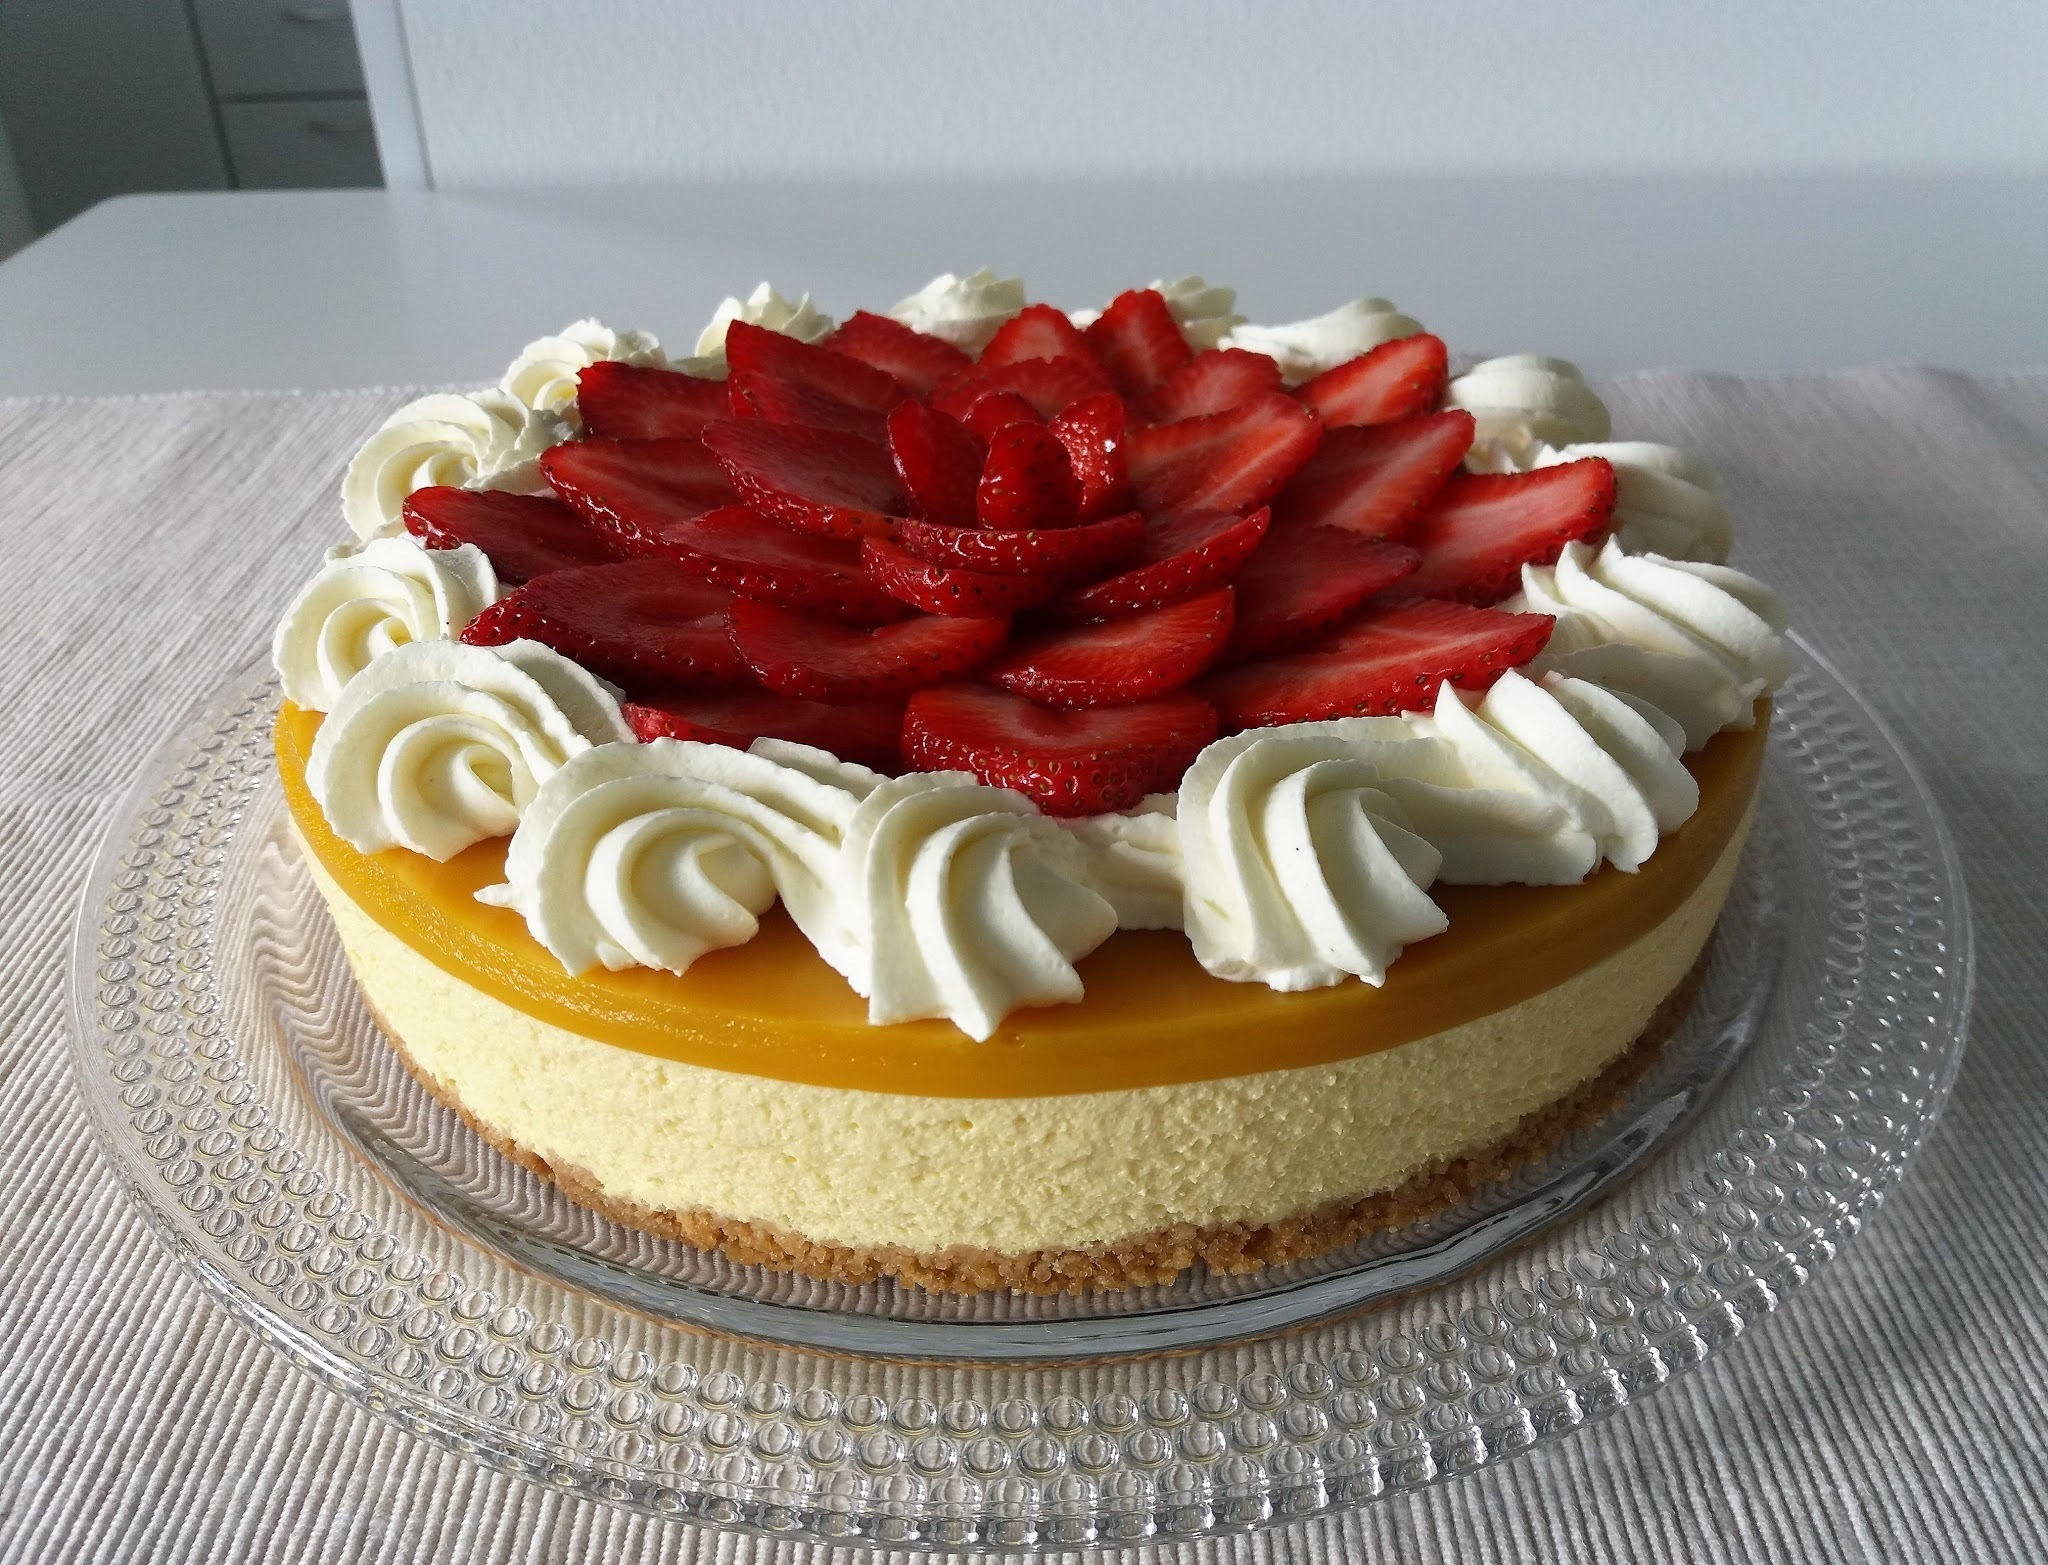 Mansikkainen mango-passionjuustokakku/ Mango-Passion Cheesecake With Strawberries (20cm)